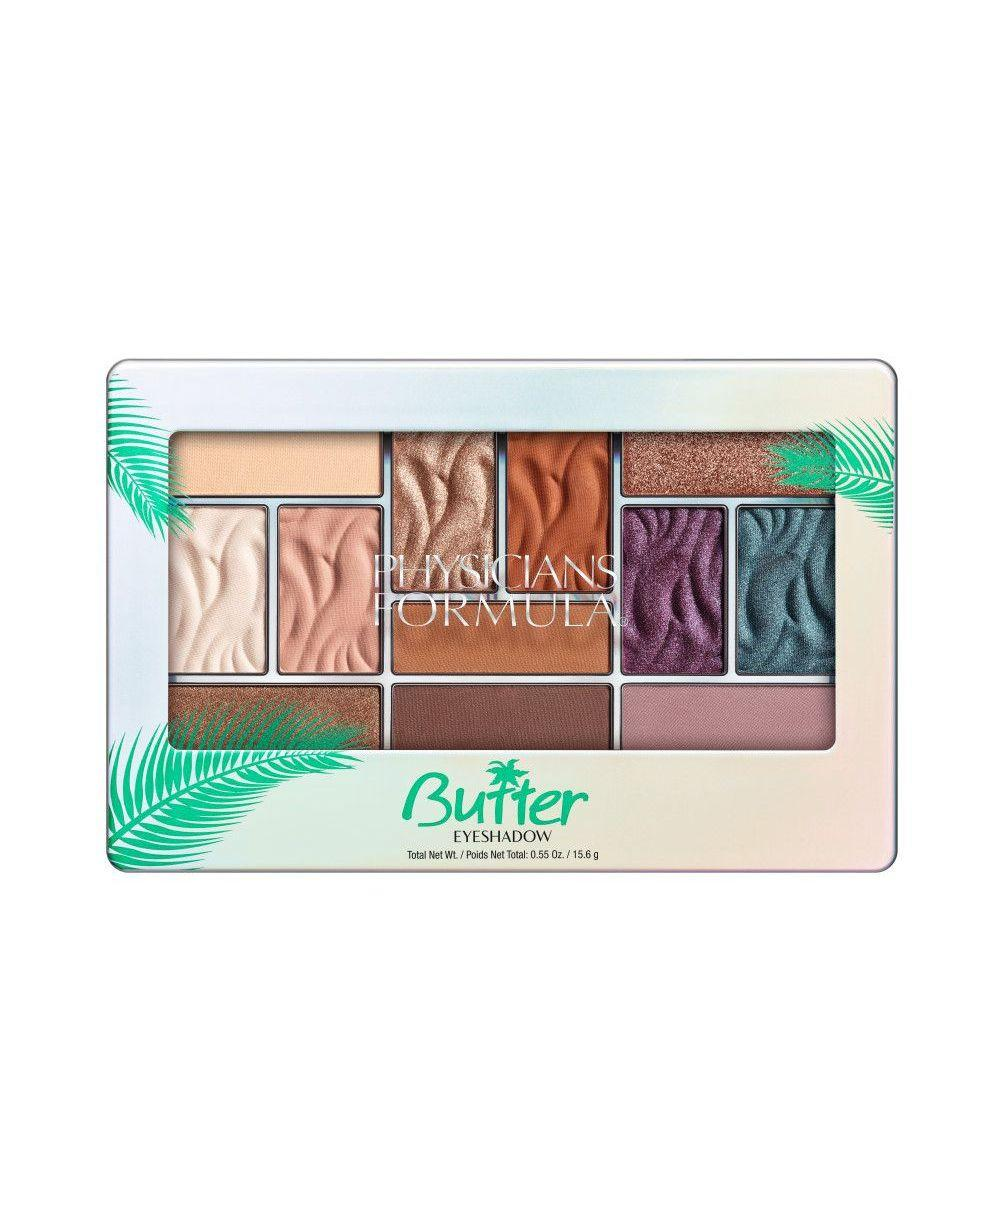 Physicians formula Butter Eyeshadow Palette - Tropical Days